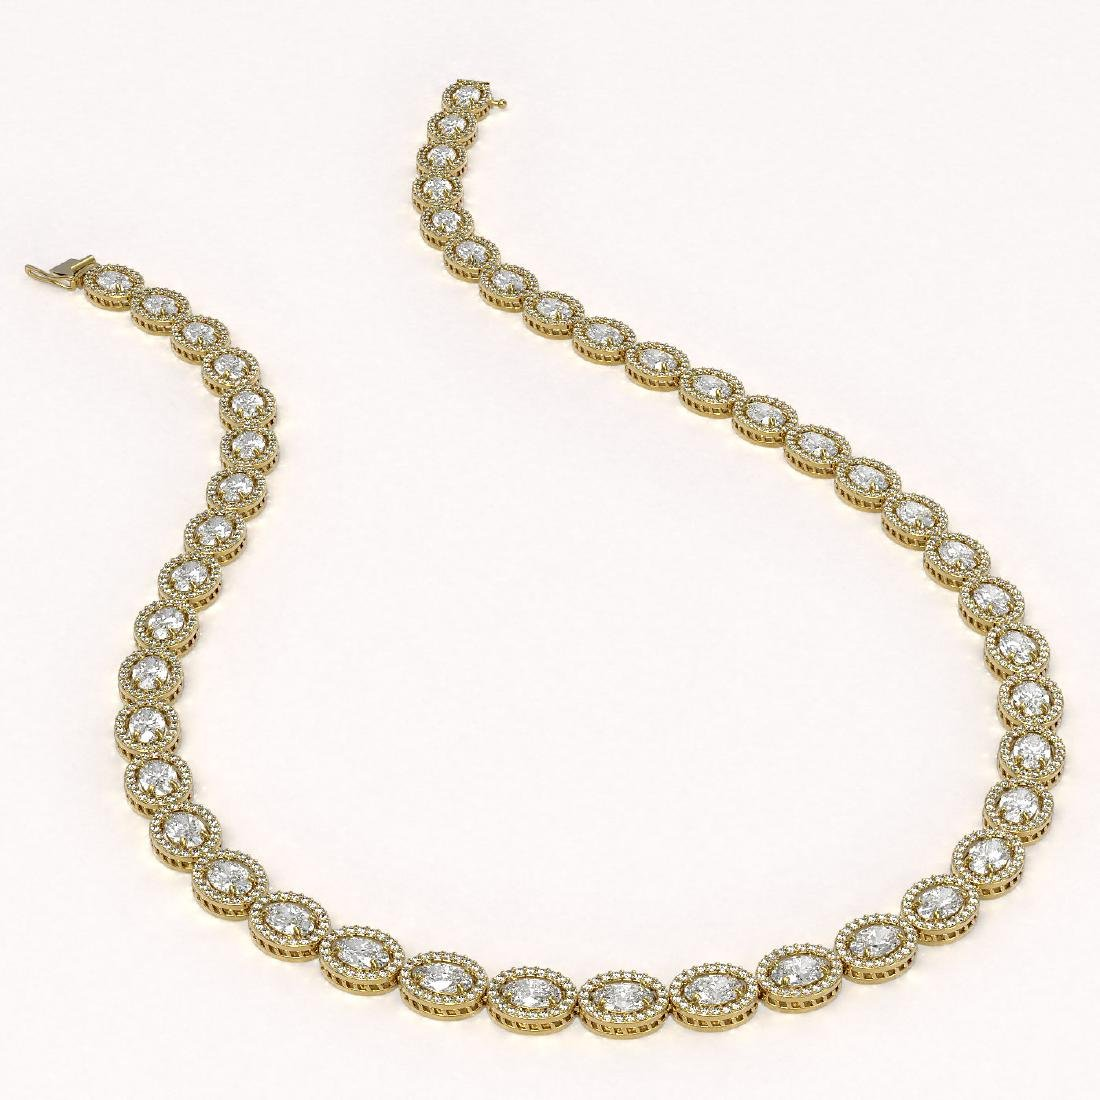 30.41 CTW Oval Diamond Designer Necklace 18K Yellow - 2